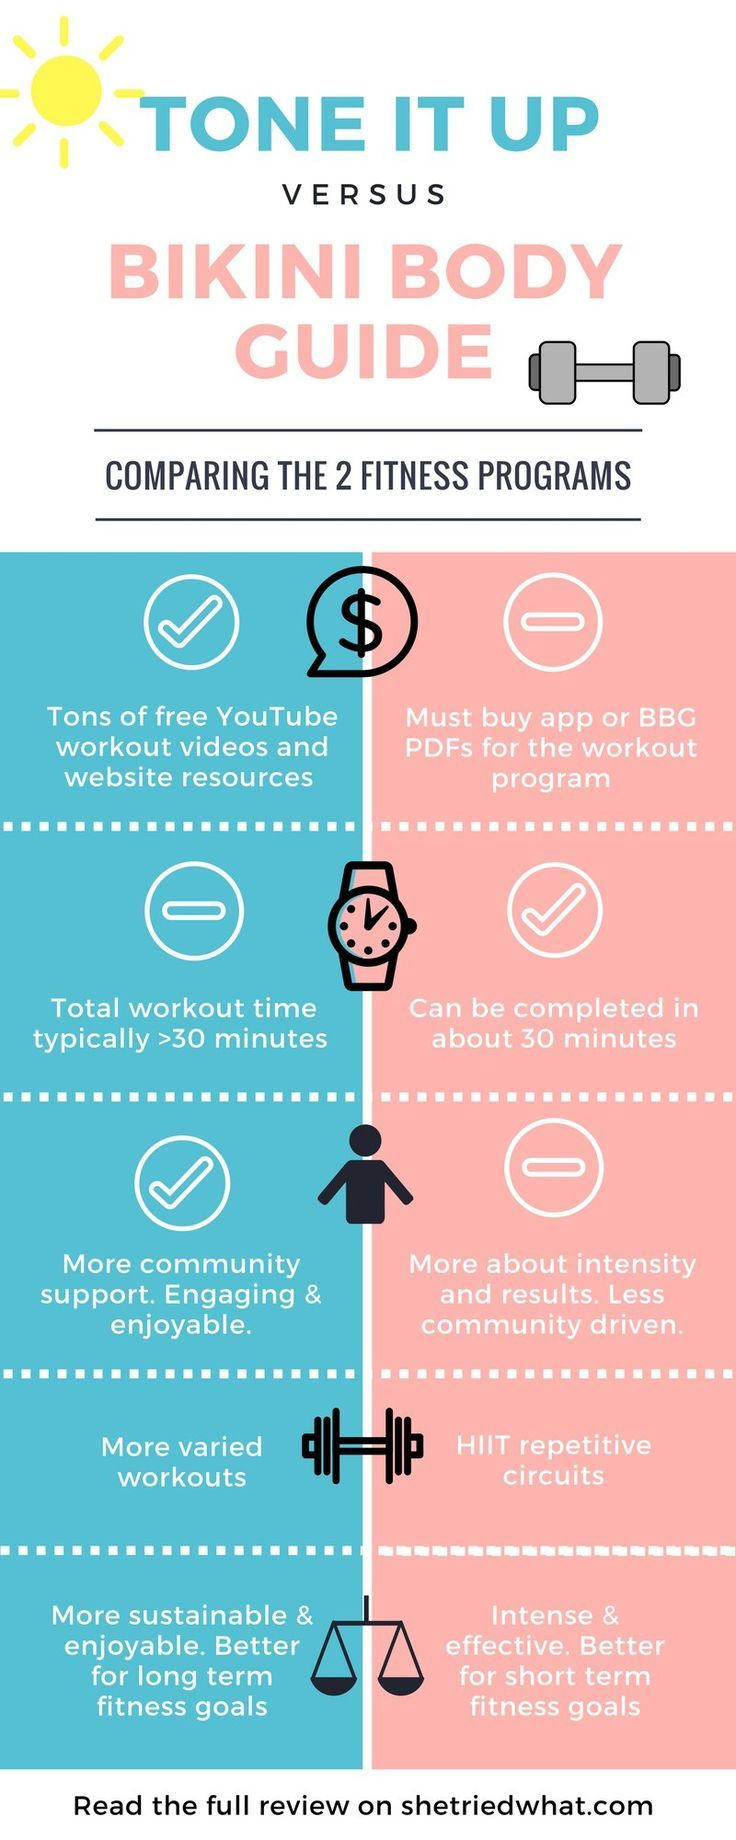 Tone It Up vs. Kayla's Bikini Body Guide (BBG) Comparison Infographic. We compare the cost, workouts, community, & more to let you know which we prefer. Read the full review to see how these two popular fitness programs weigh in!